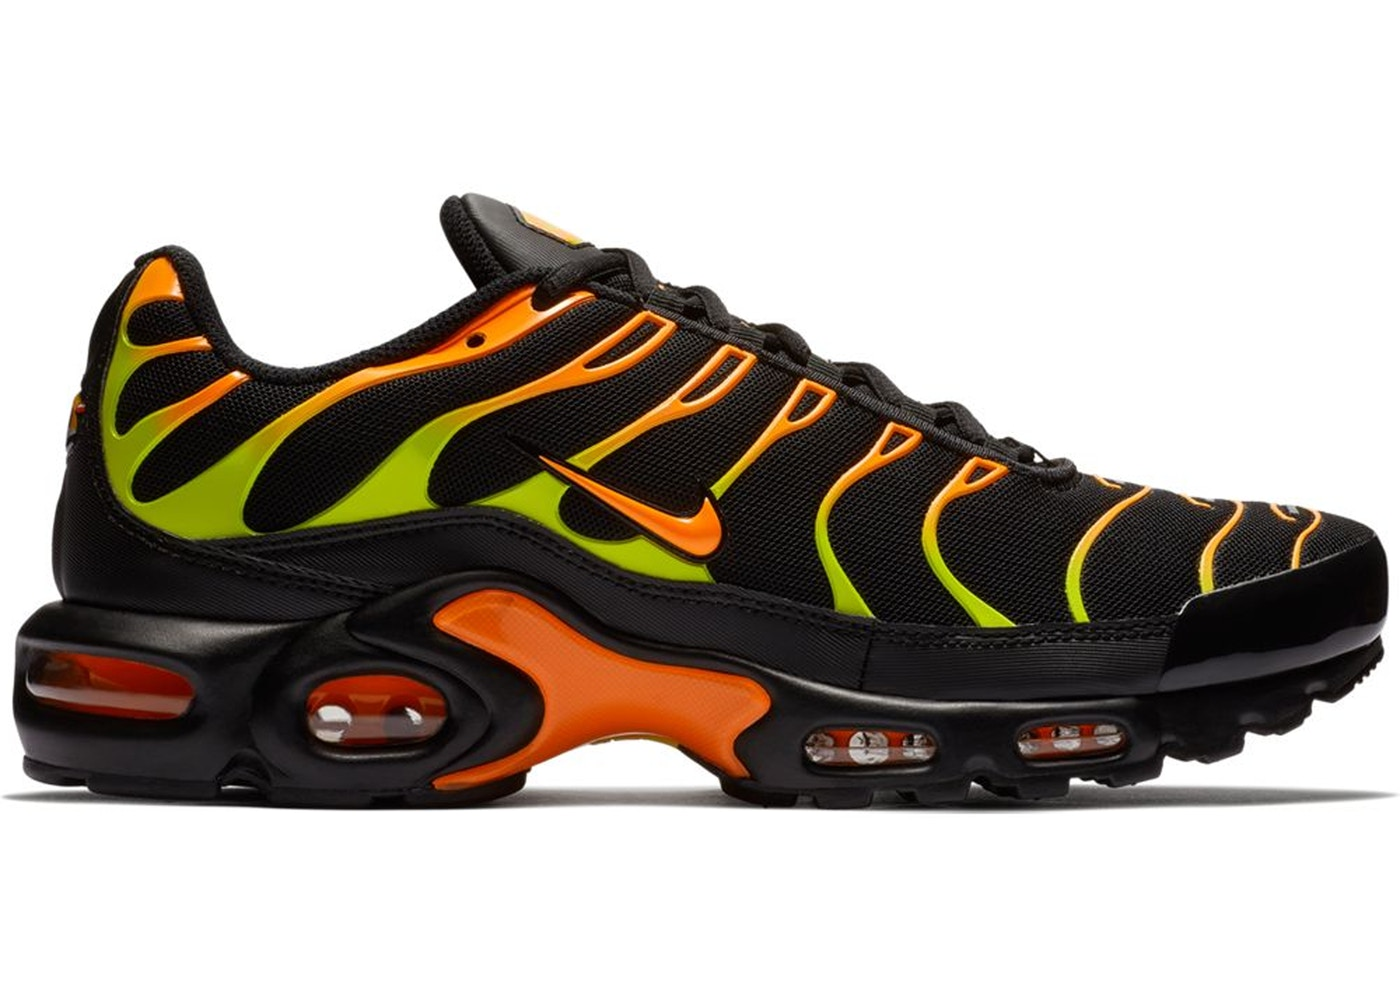 quality design c6bd9 9b6a3 Air Max Plus Black Volt Total Orange